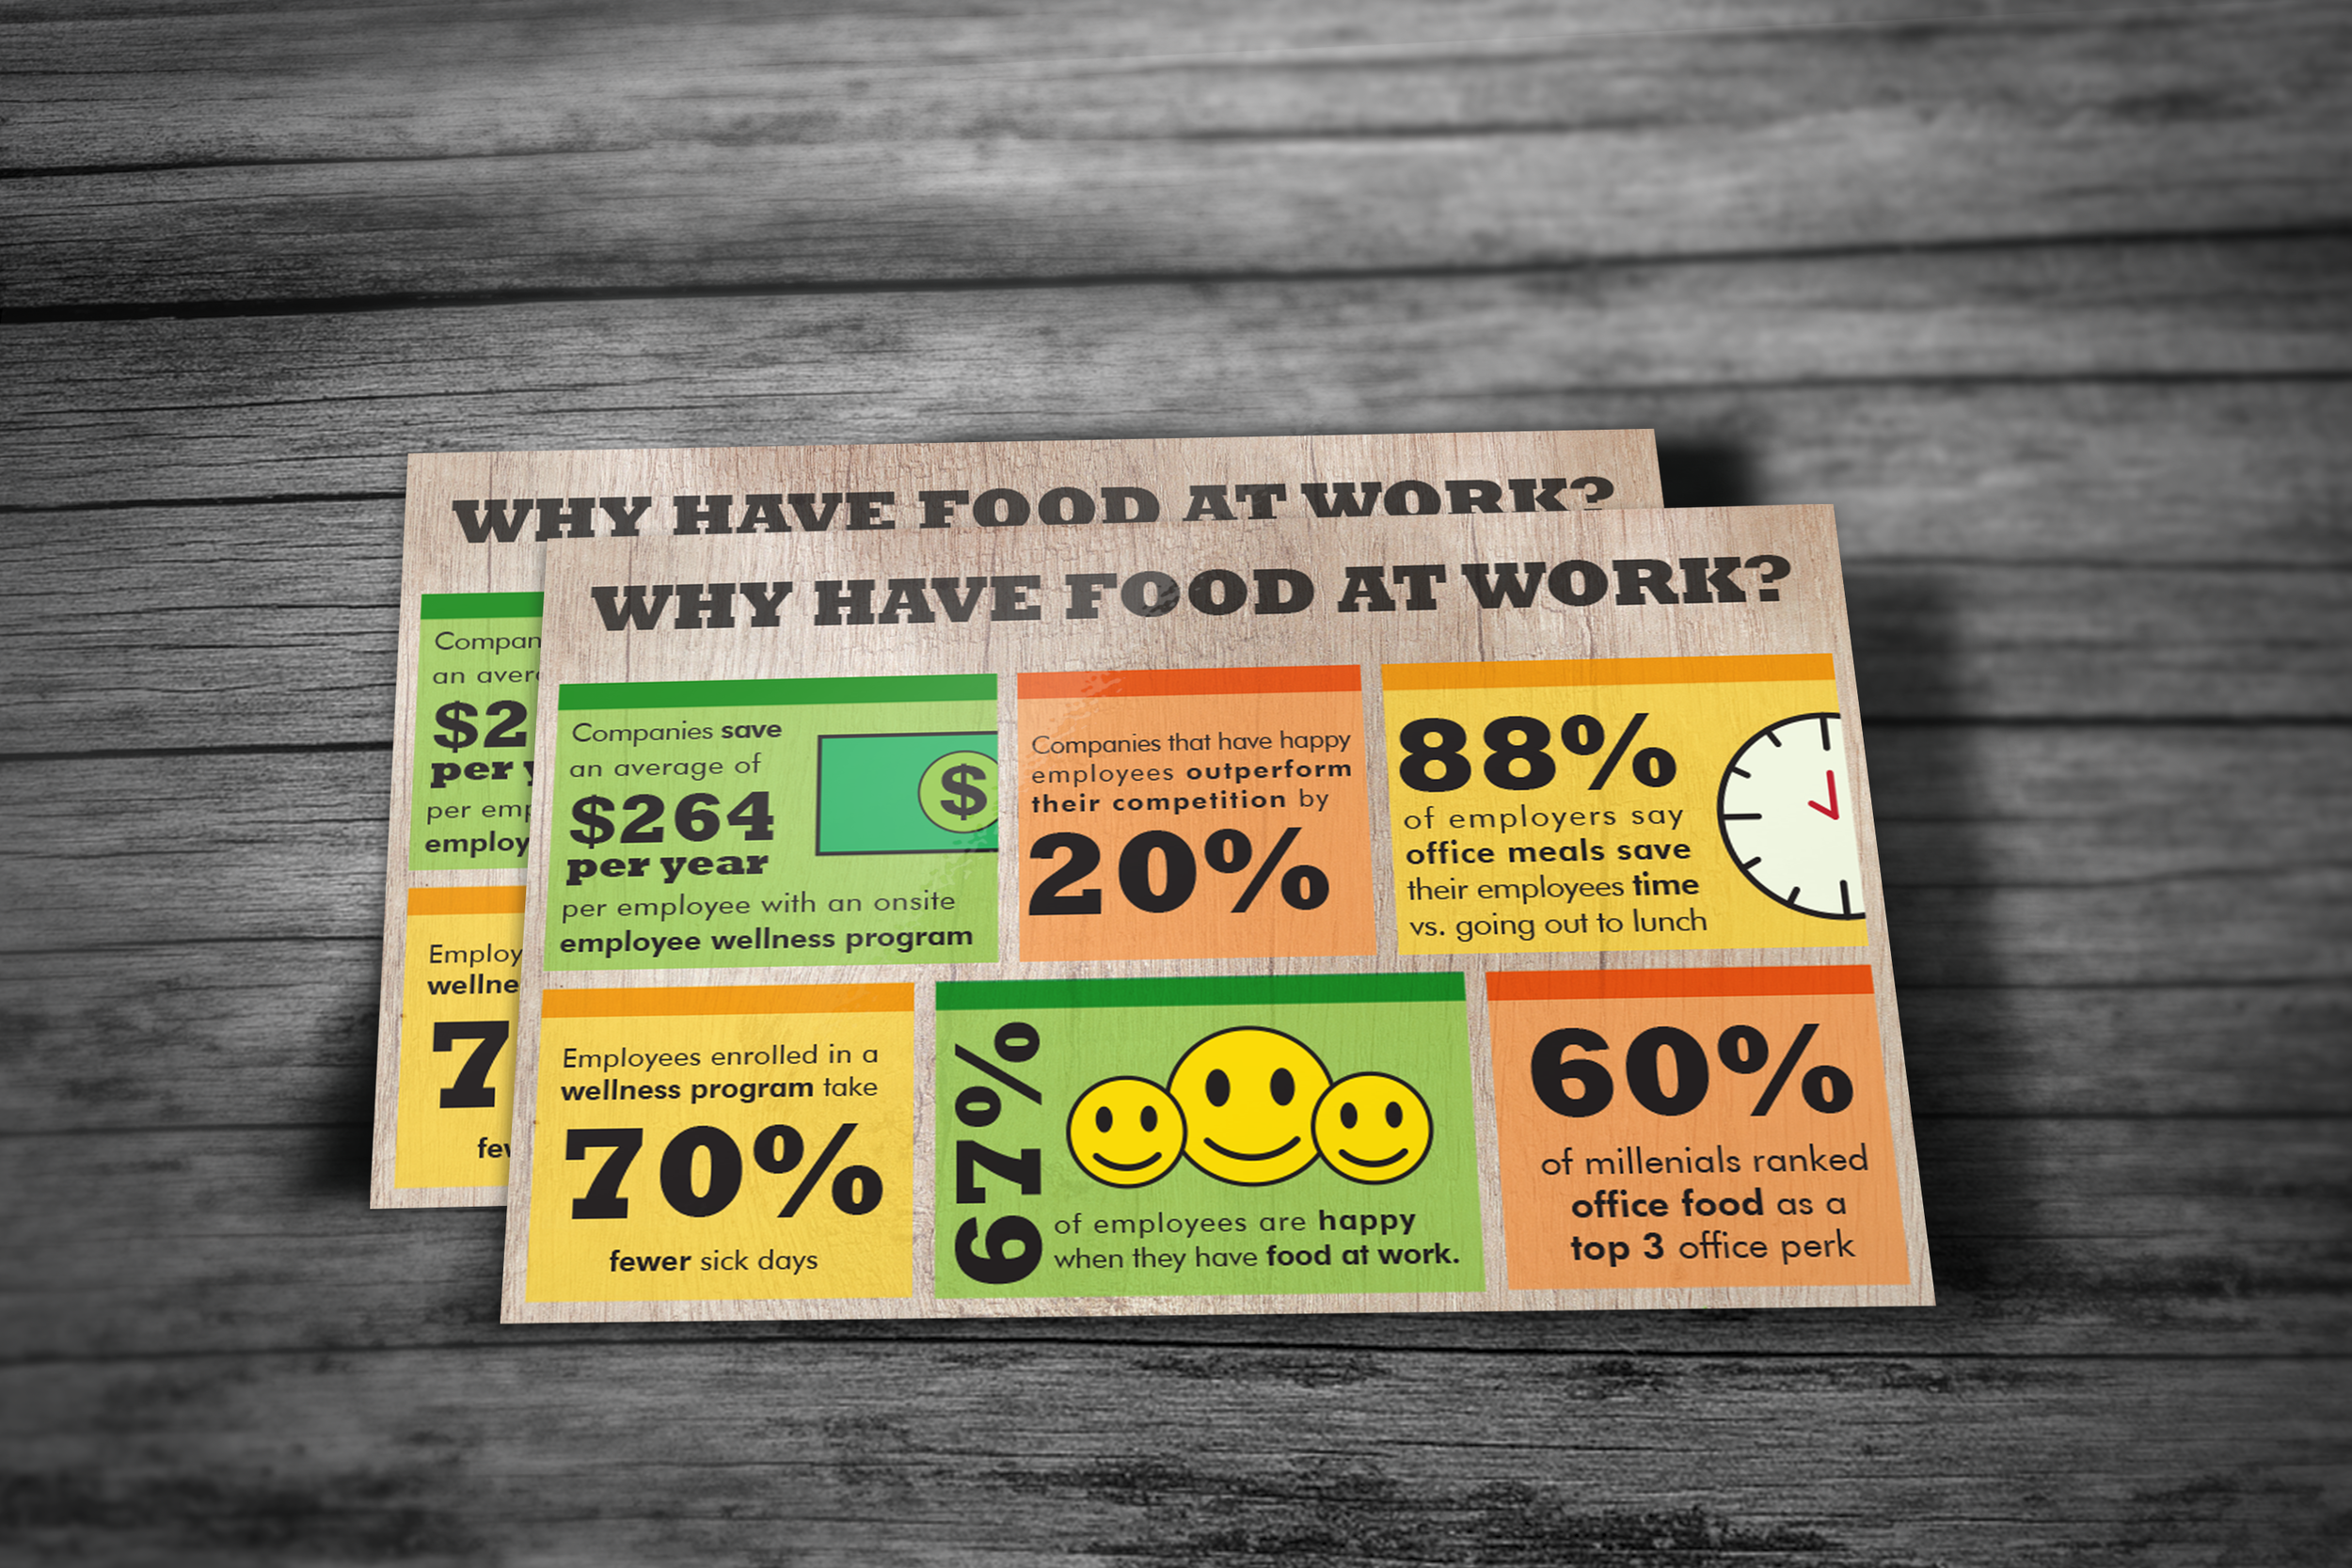 - Design Process: Client requested a postcard to display statistics about the advantages of food in the workplace. For the front, I used existing brand imagery and created continuity used colors from the photo on the back.